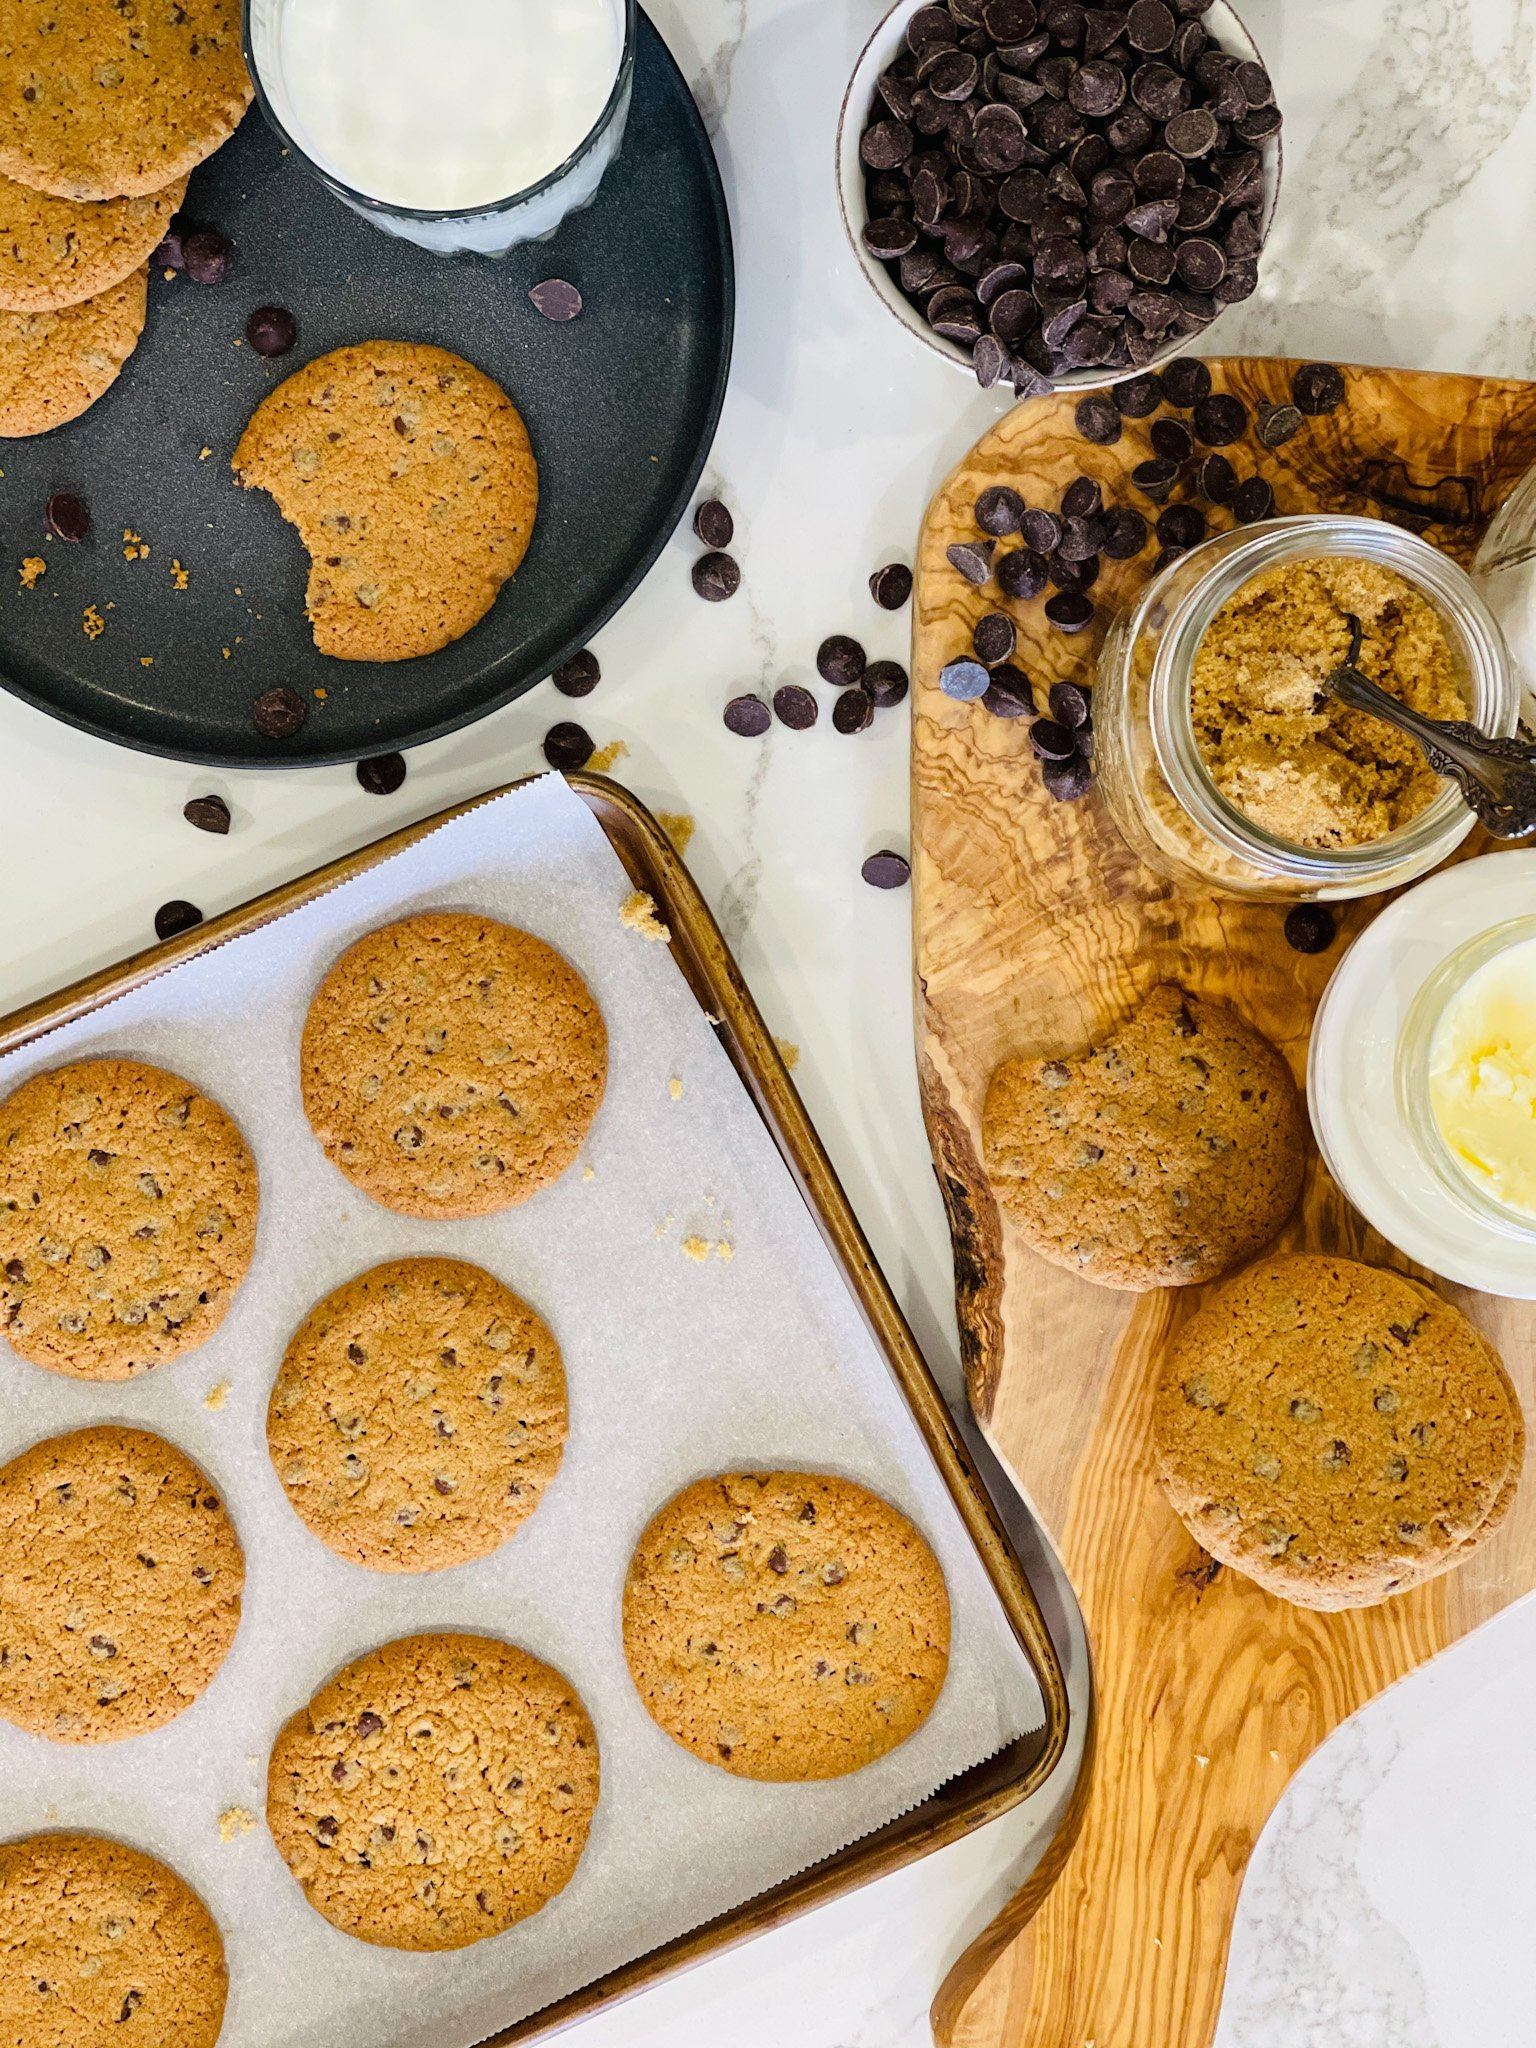 Hot Cakes Bakery - Crispy Crafted Chocolate Chip Cookies 1